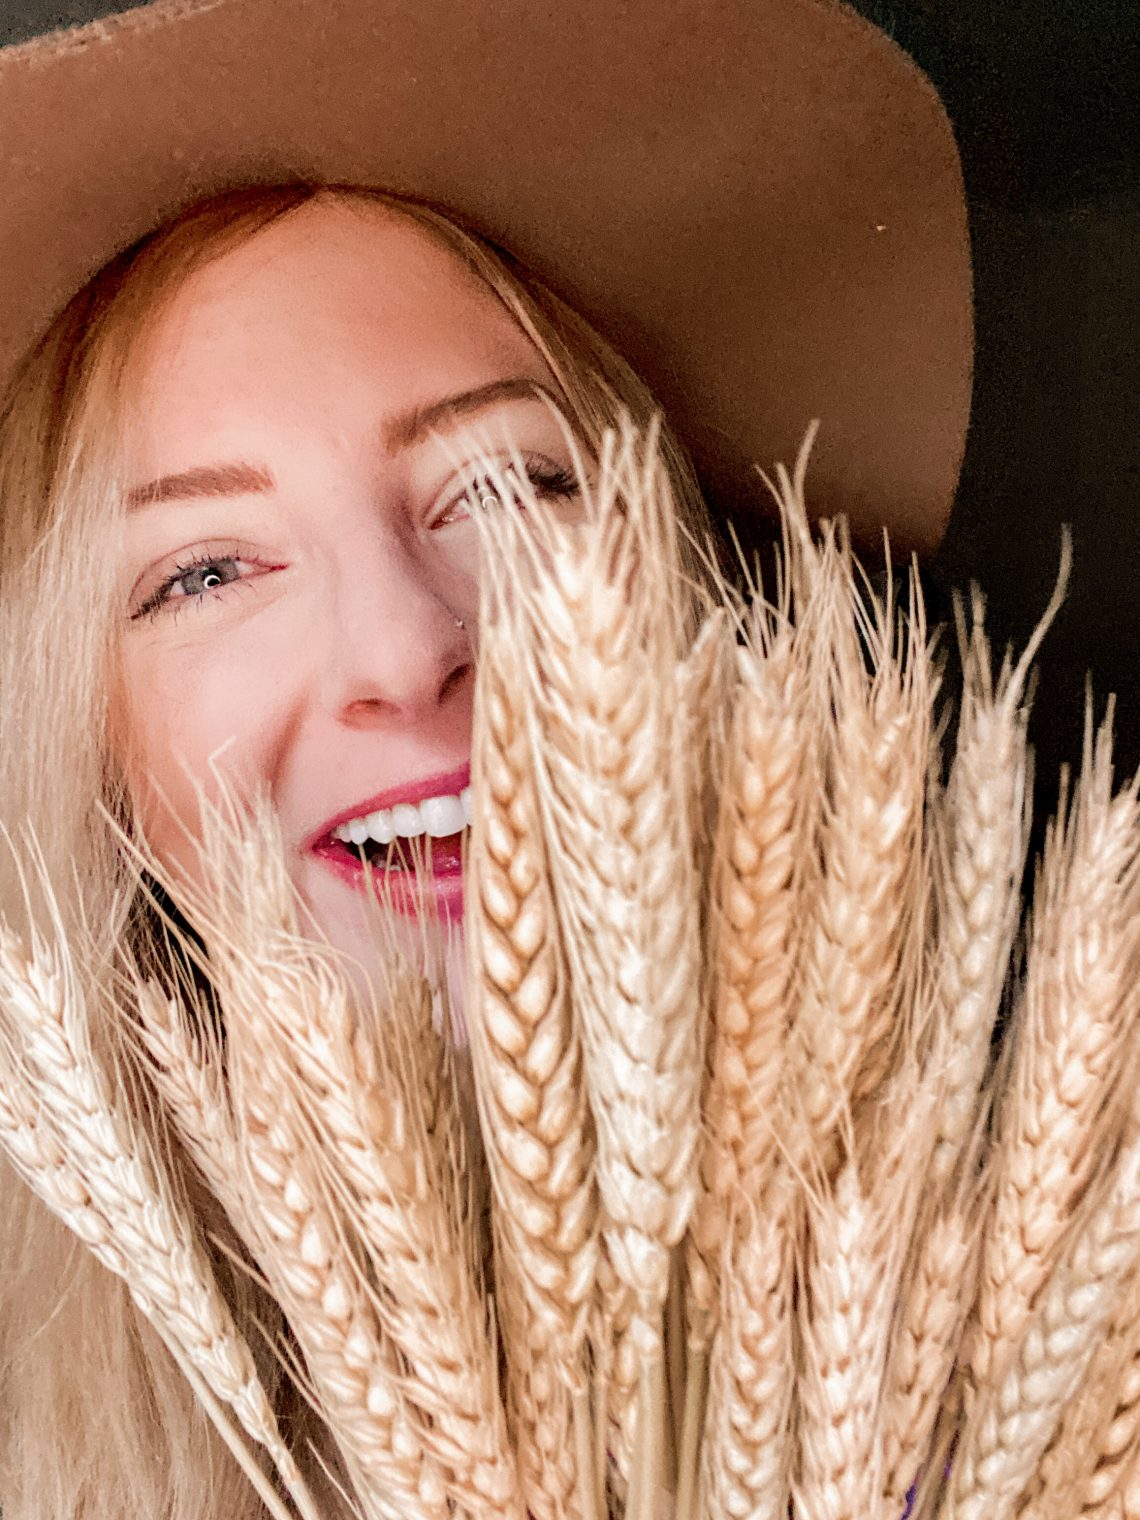 I am smiling behind dried wheat